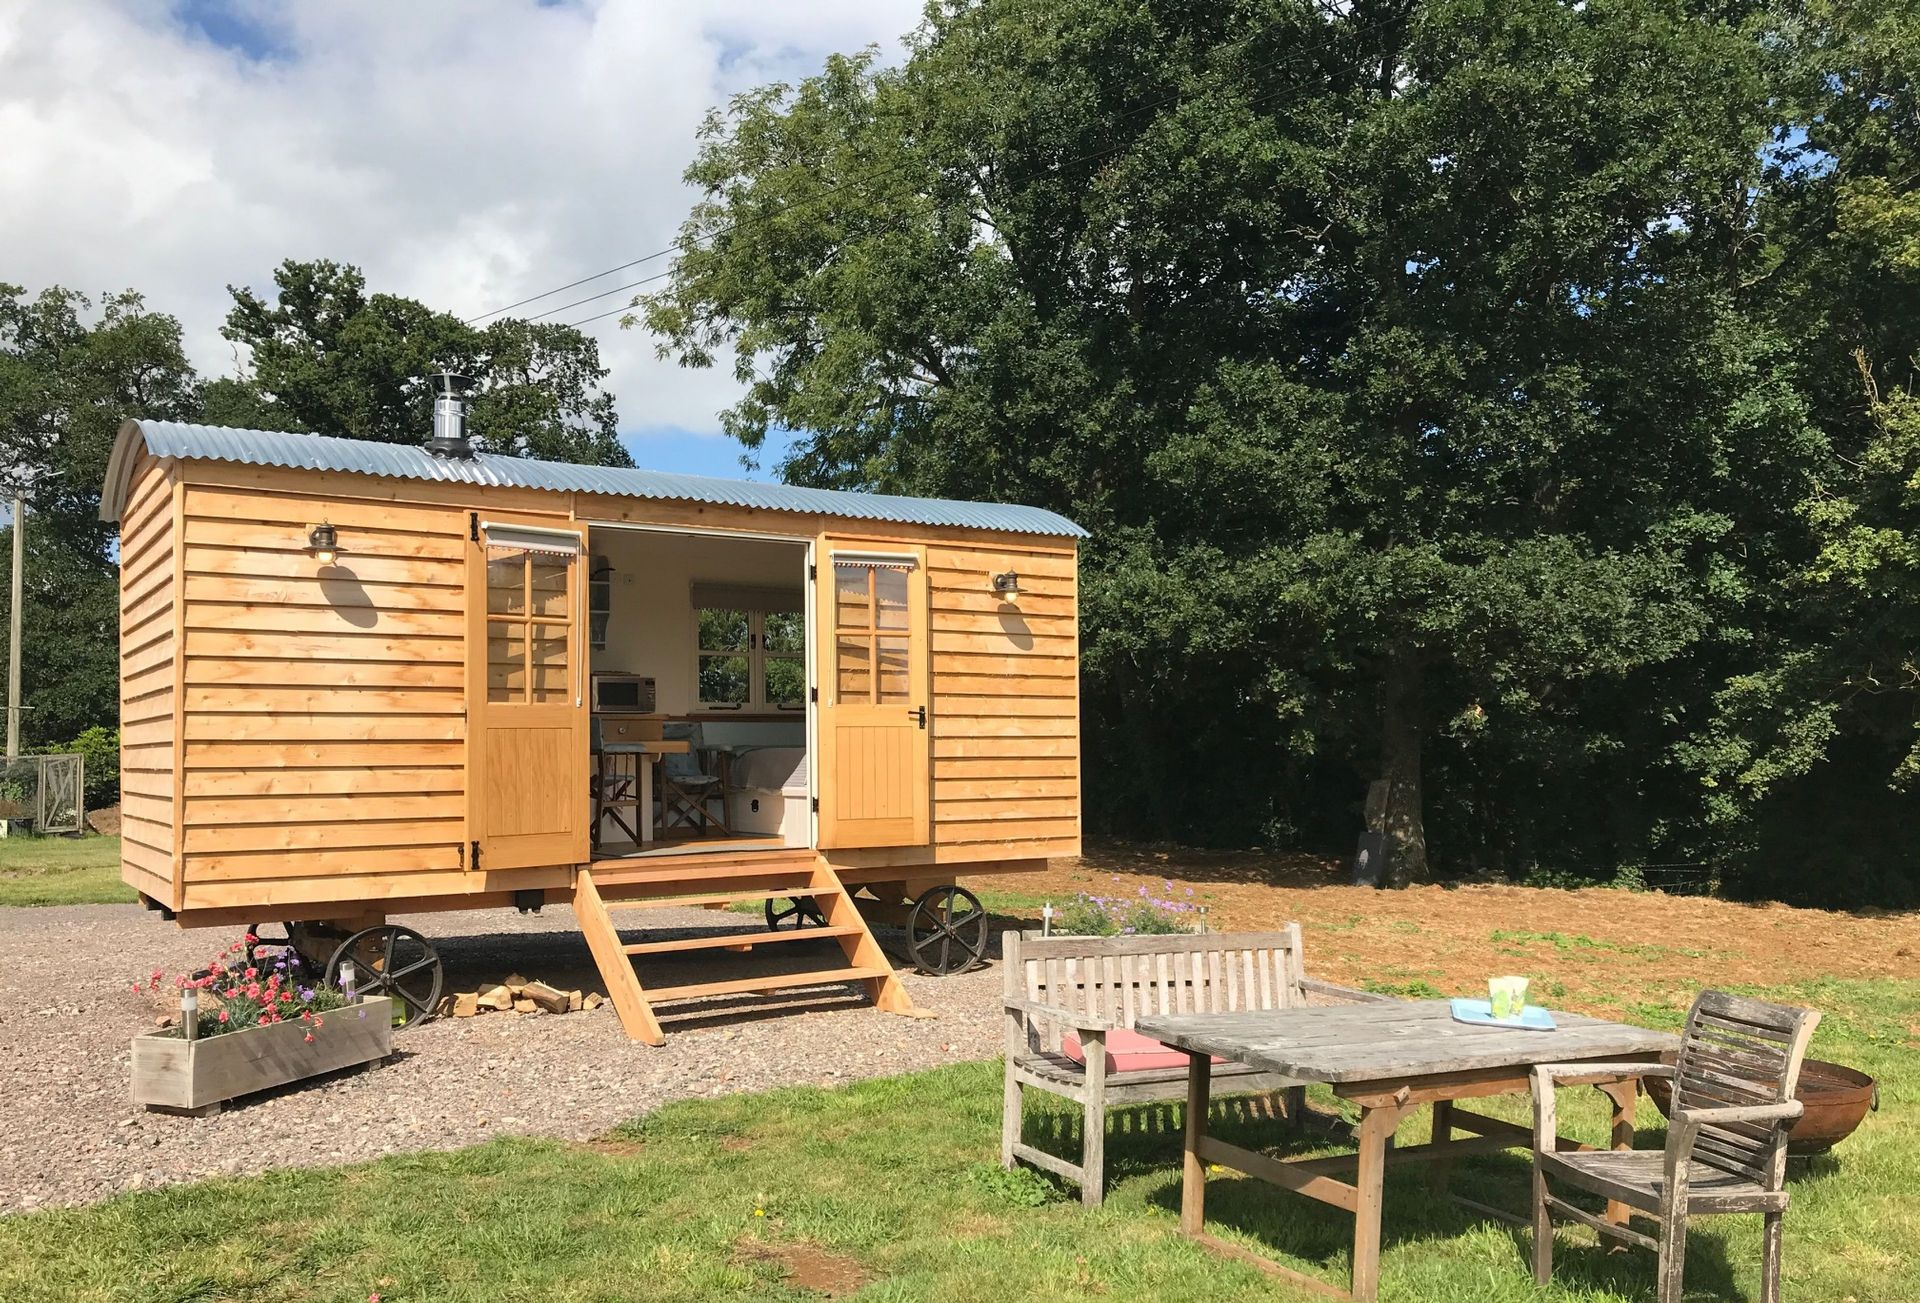 Click here for more about Blossom the shepherd's hut